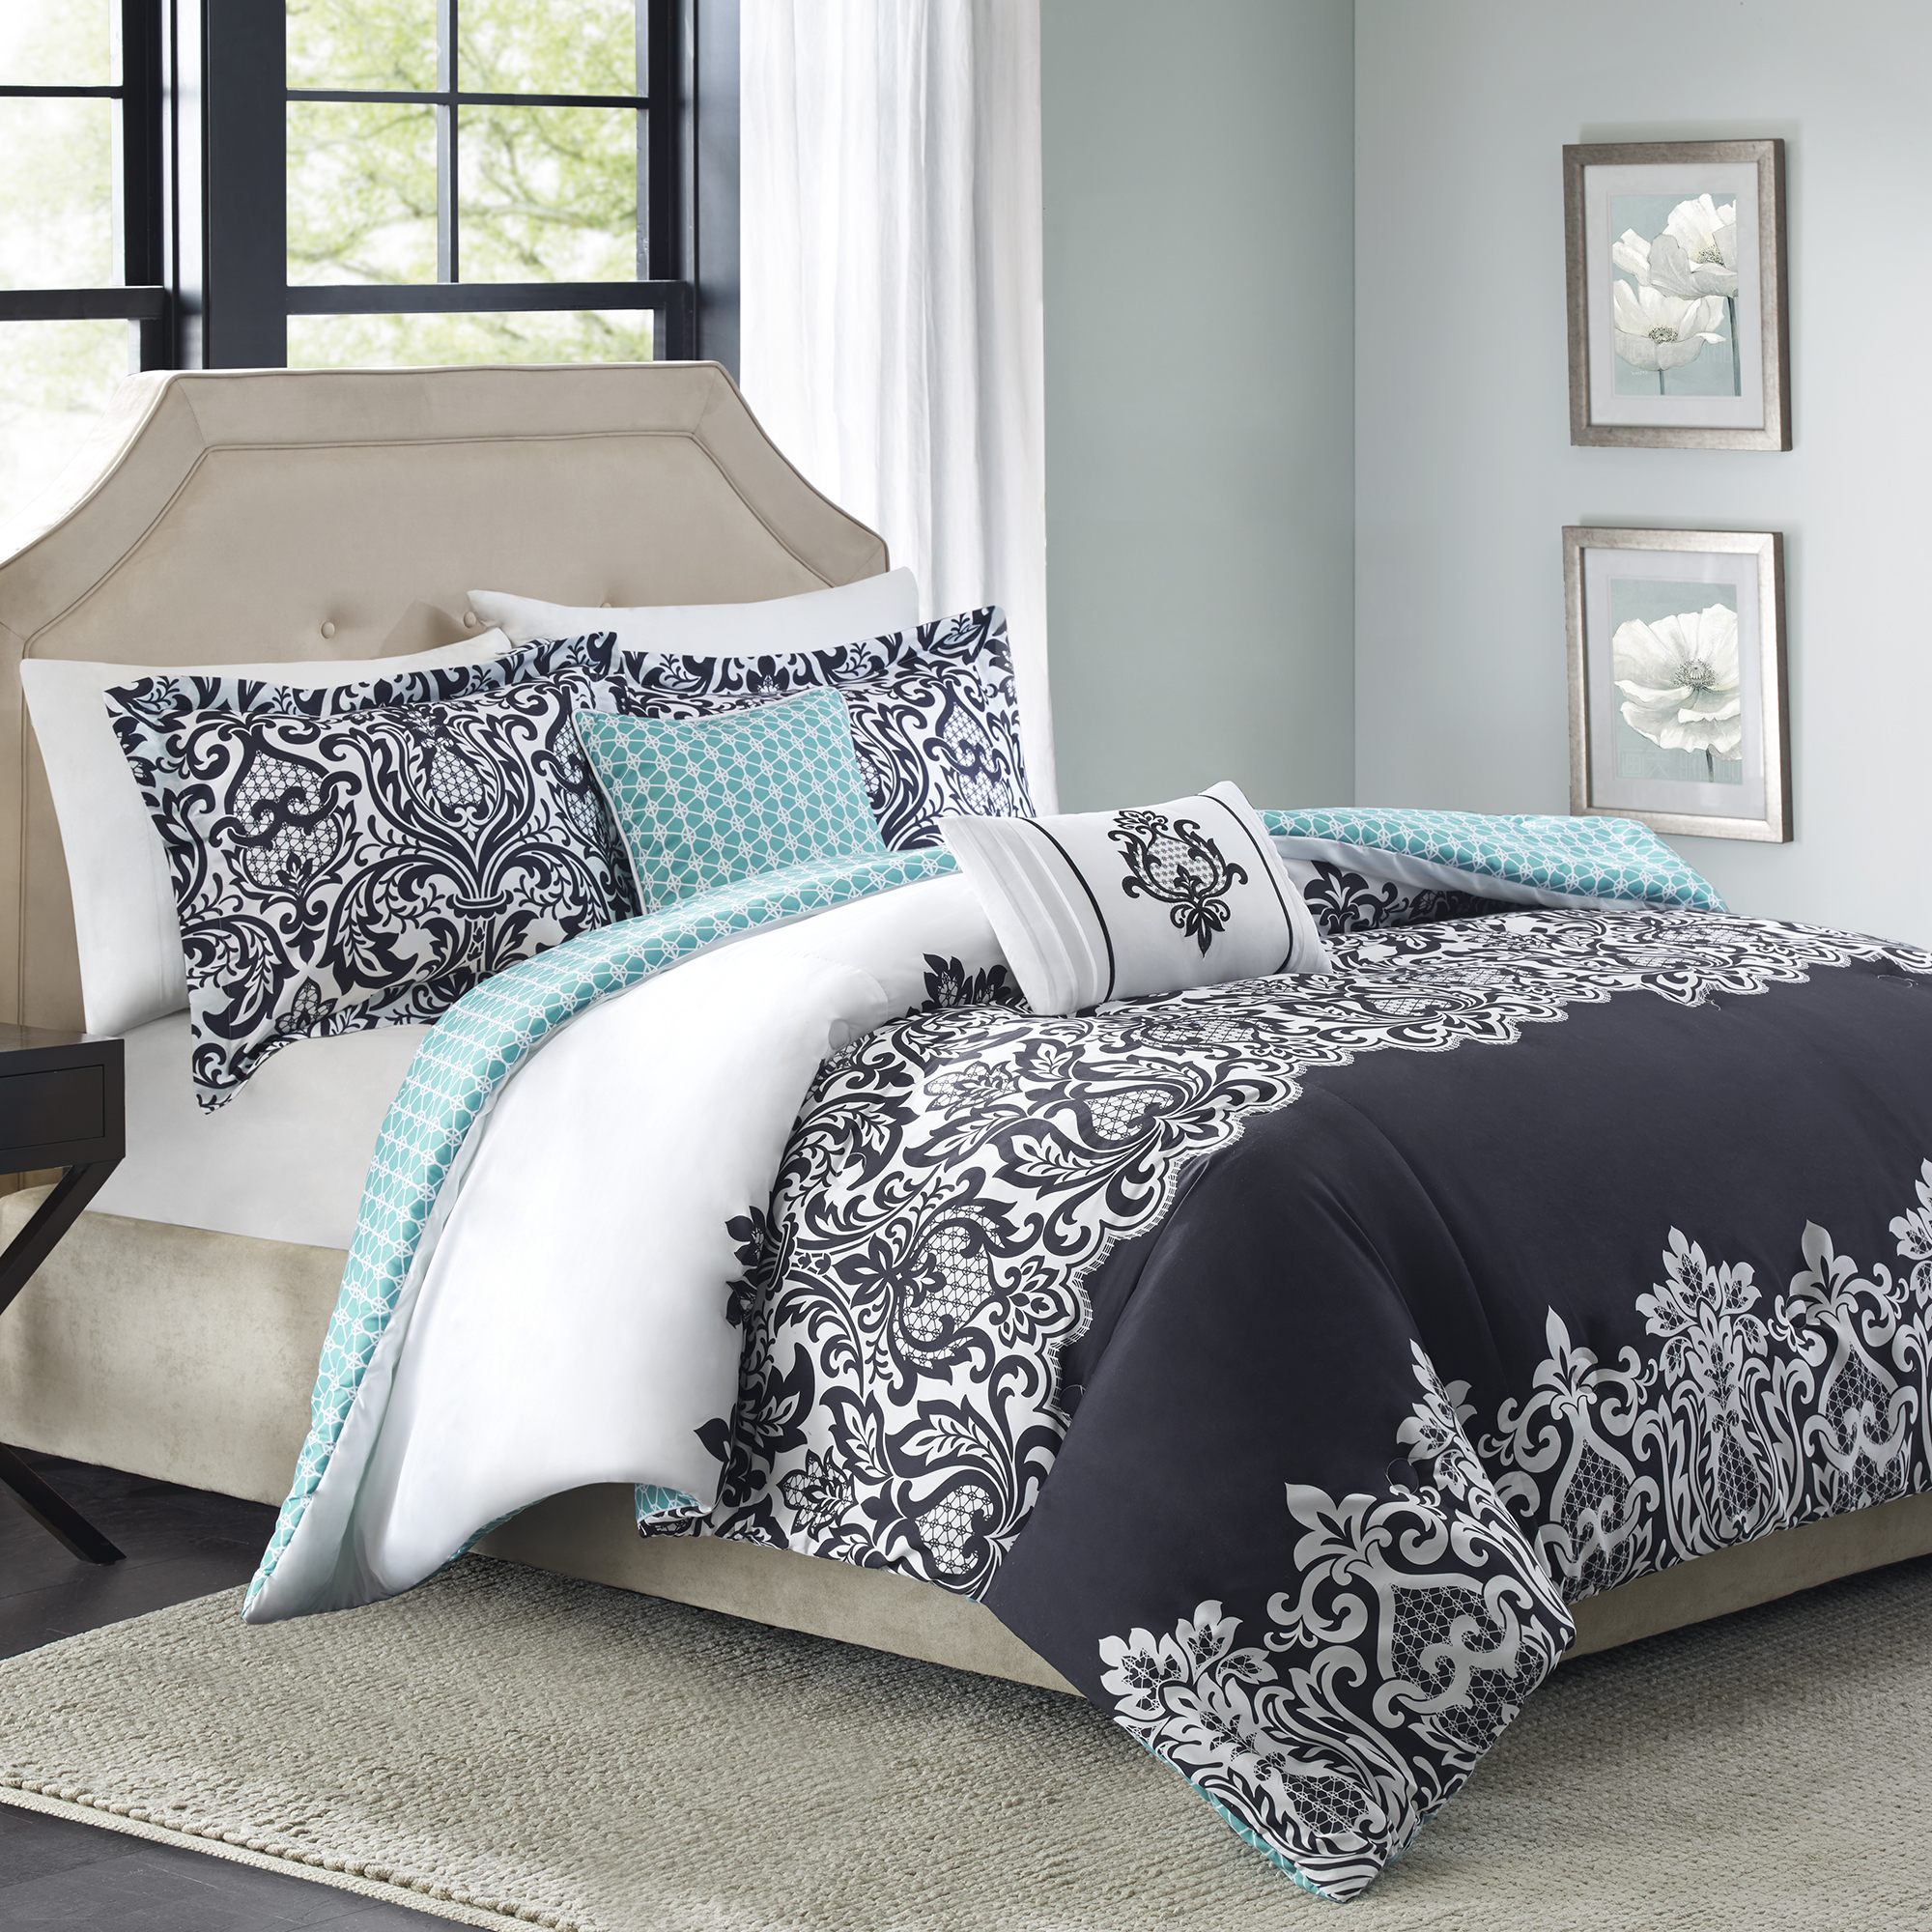 Better Homes & Gardens Full or Queen Damask Black Comforter Set, 5 Piece